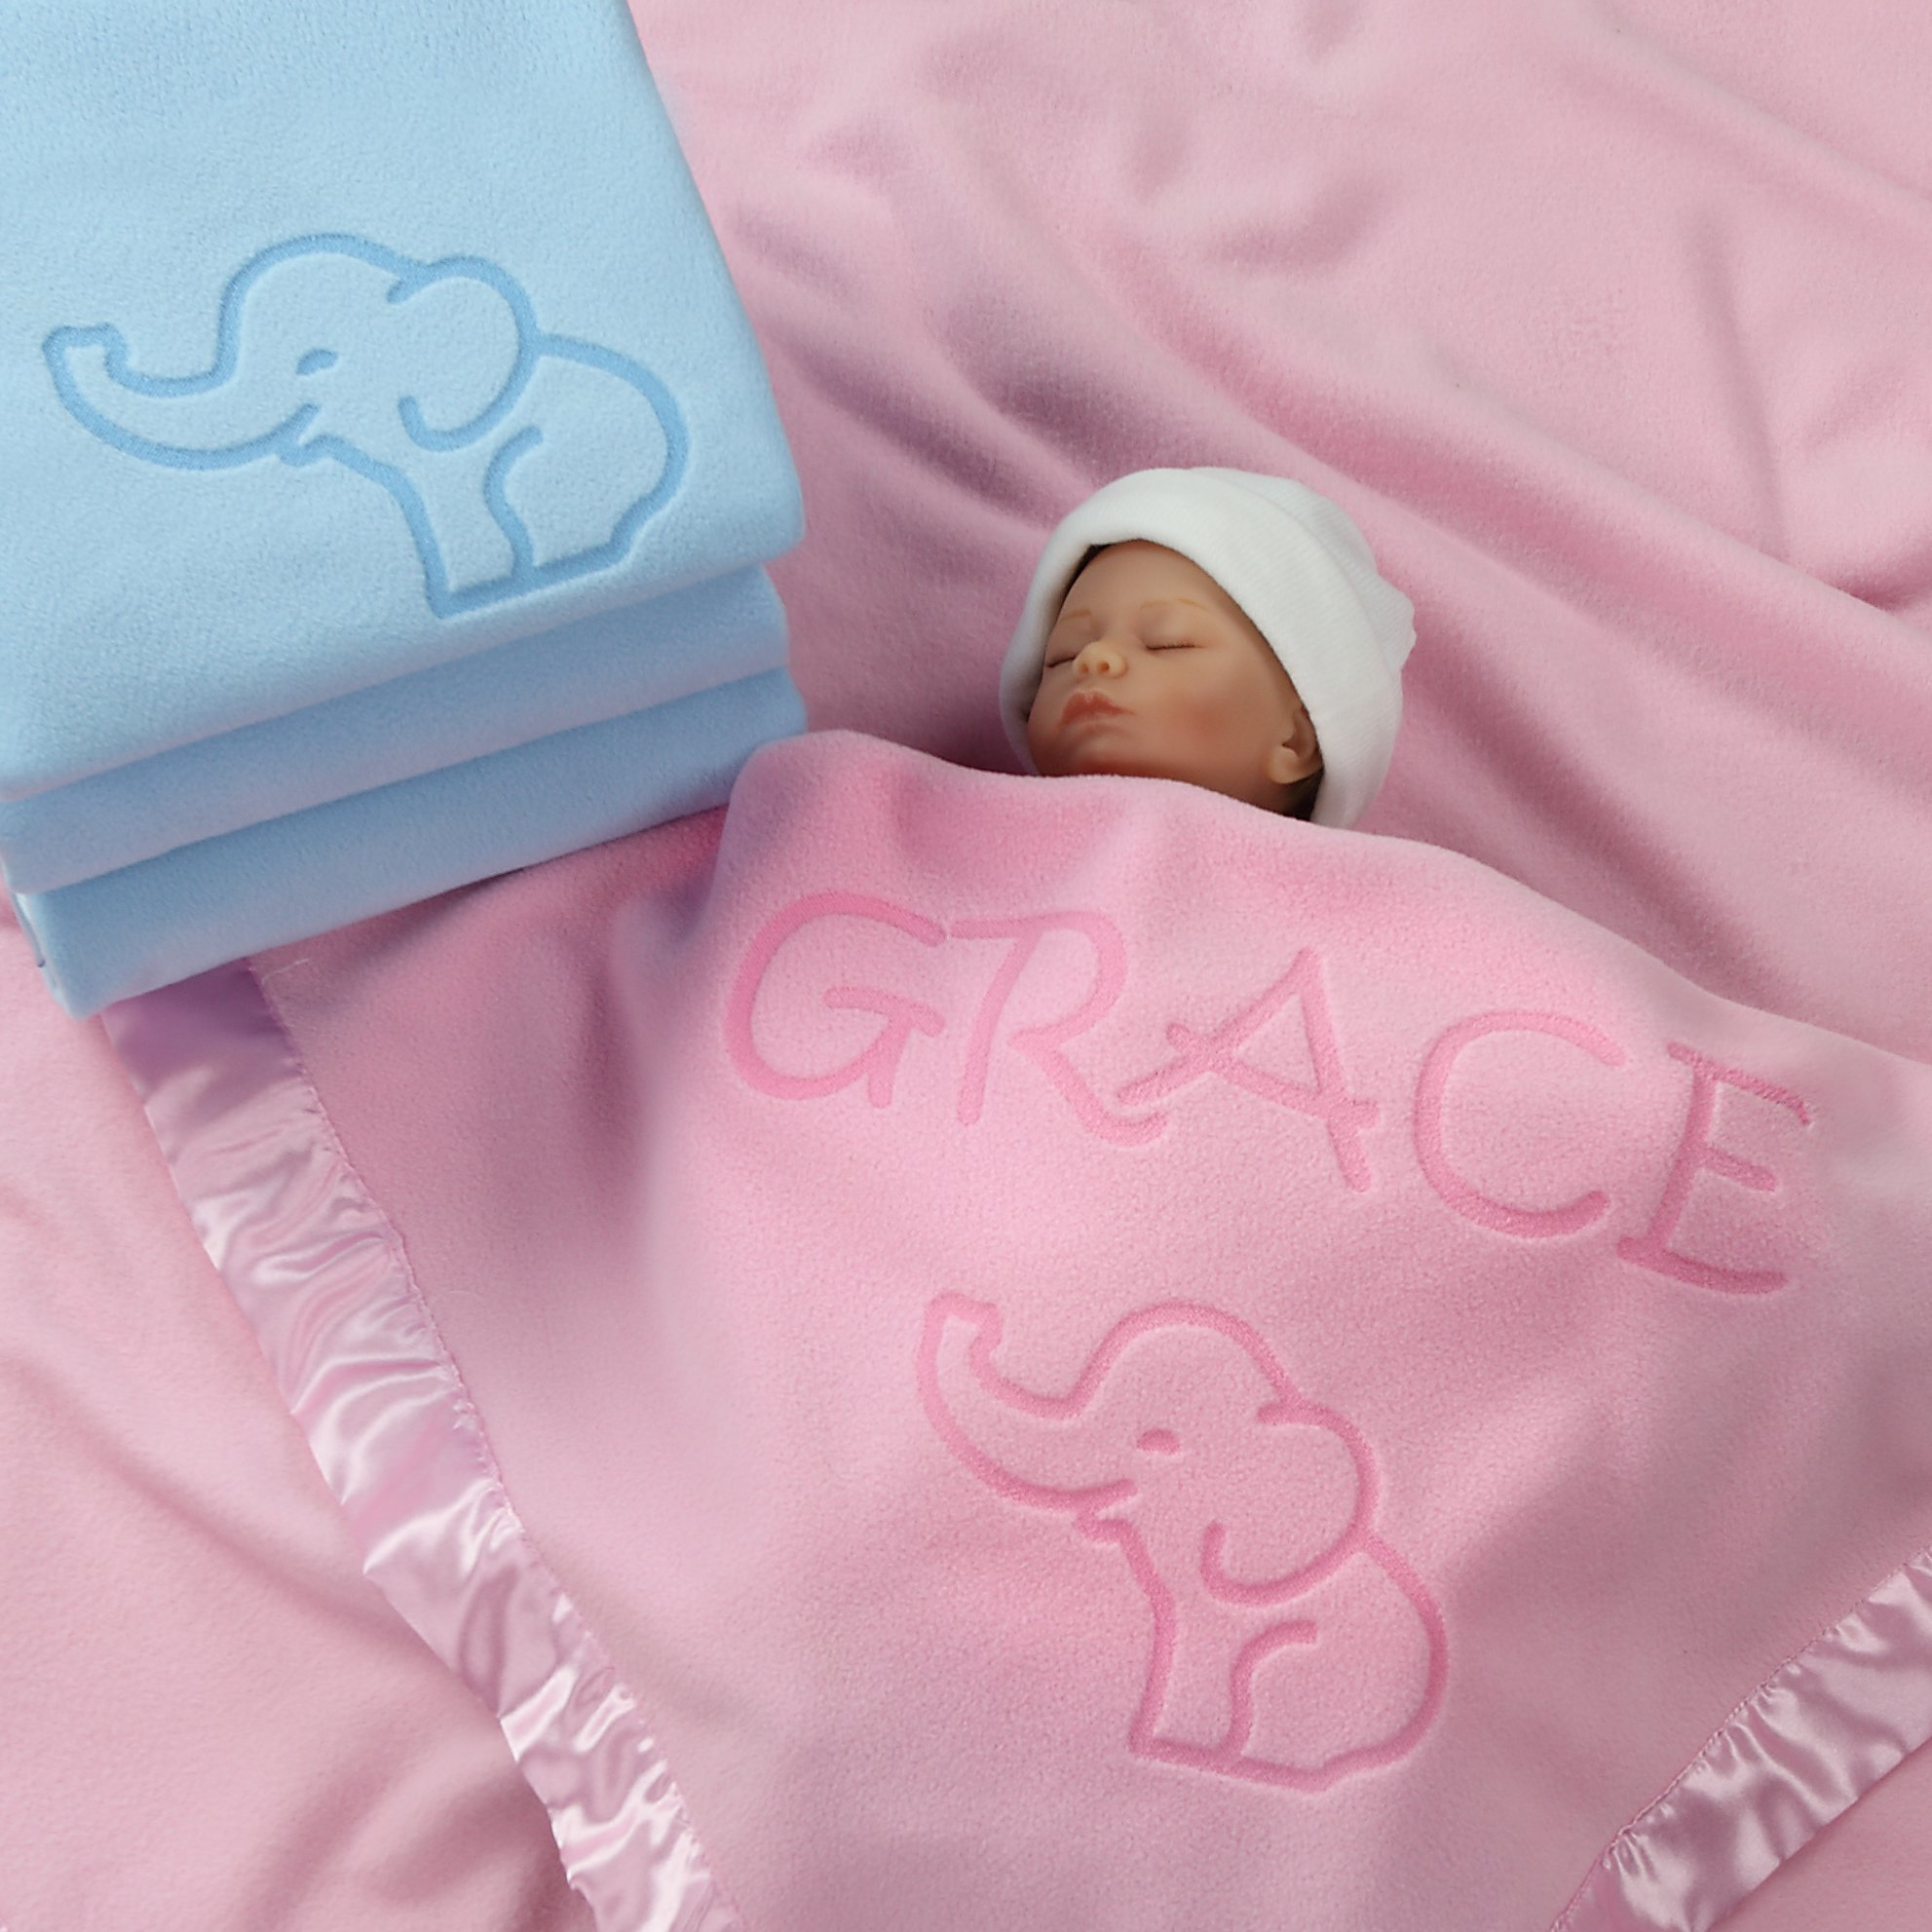 Elephant Blanket Baby Boy, Girls - Nursery Décor, Soft Plush Fleece, Pink, Blue (1 Line of Text)